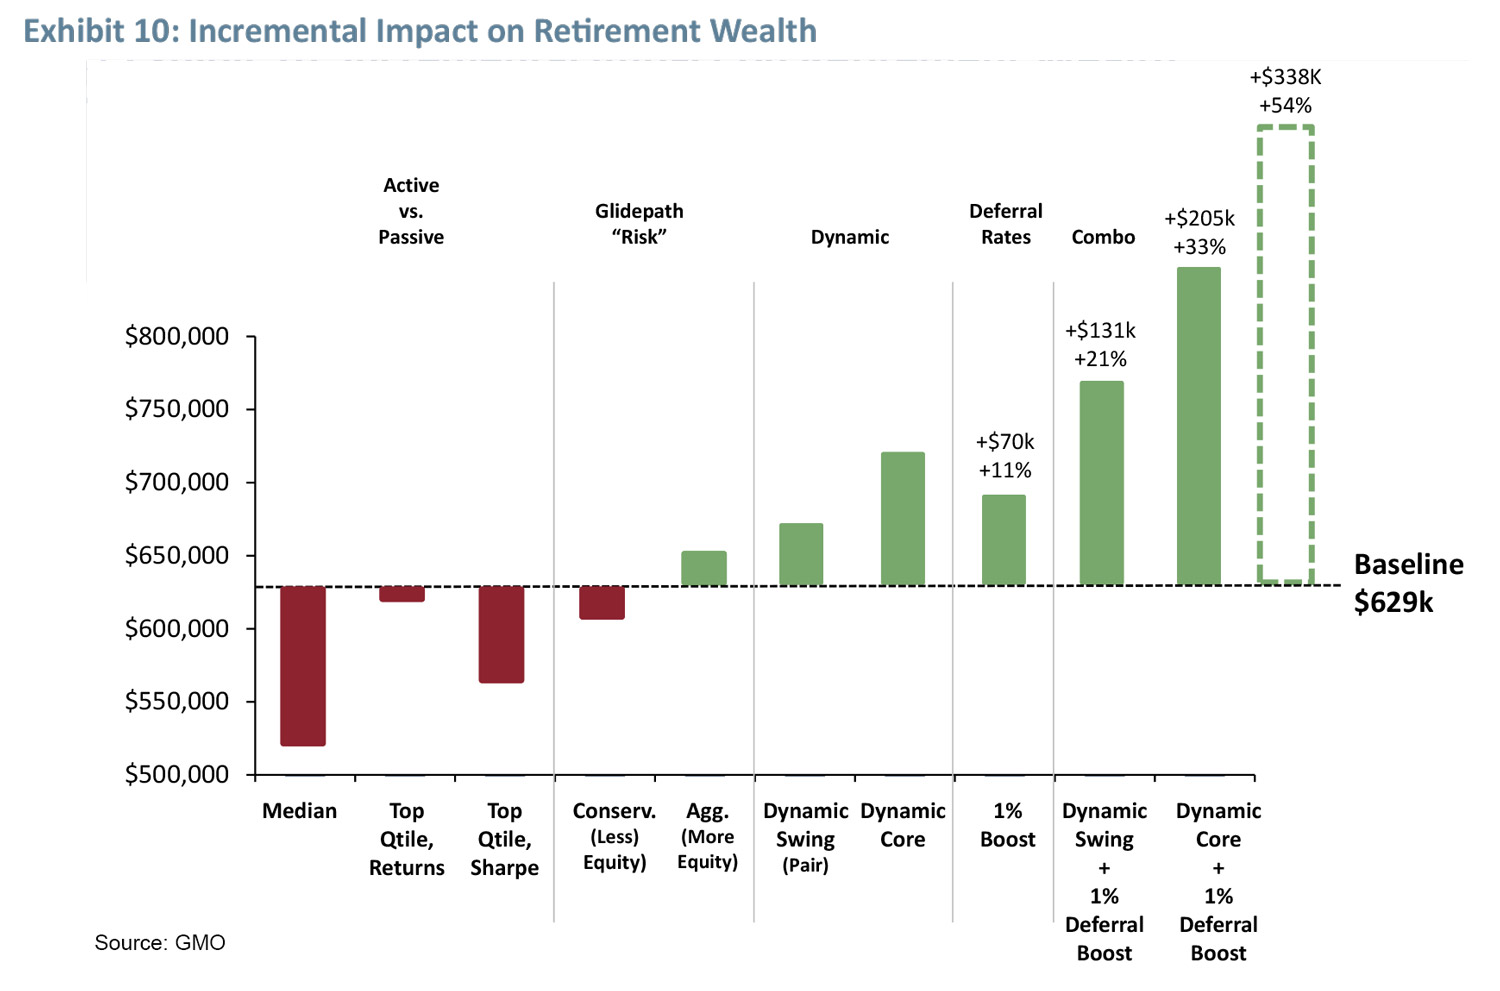 Incremental impact on retirement wealth. Source: GMO